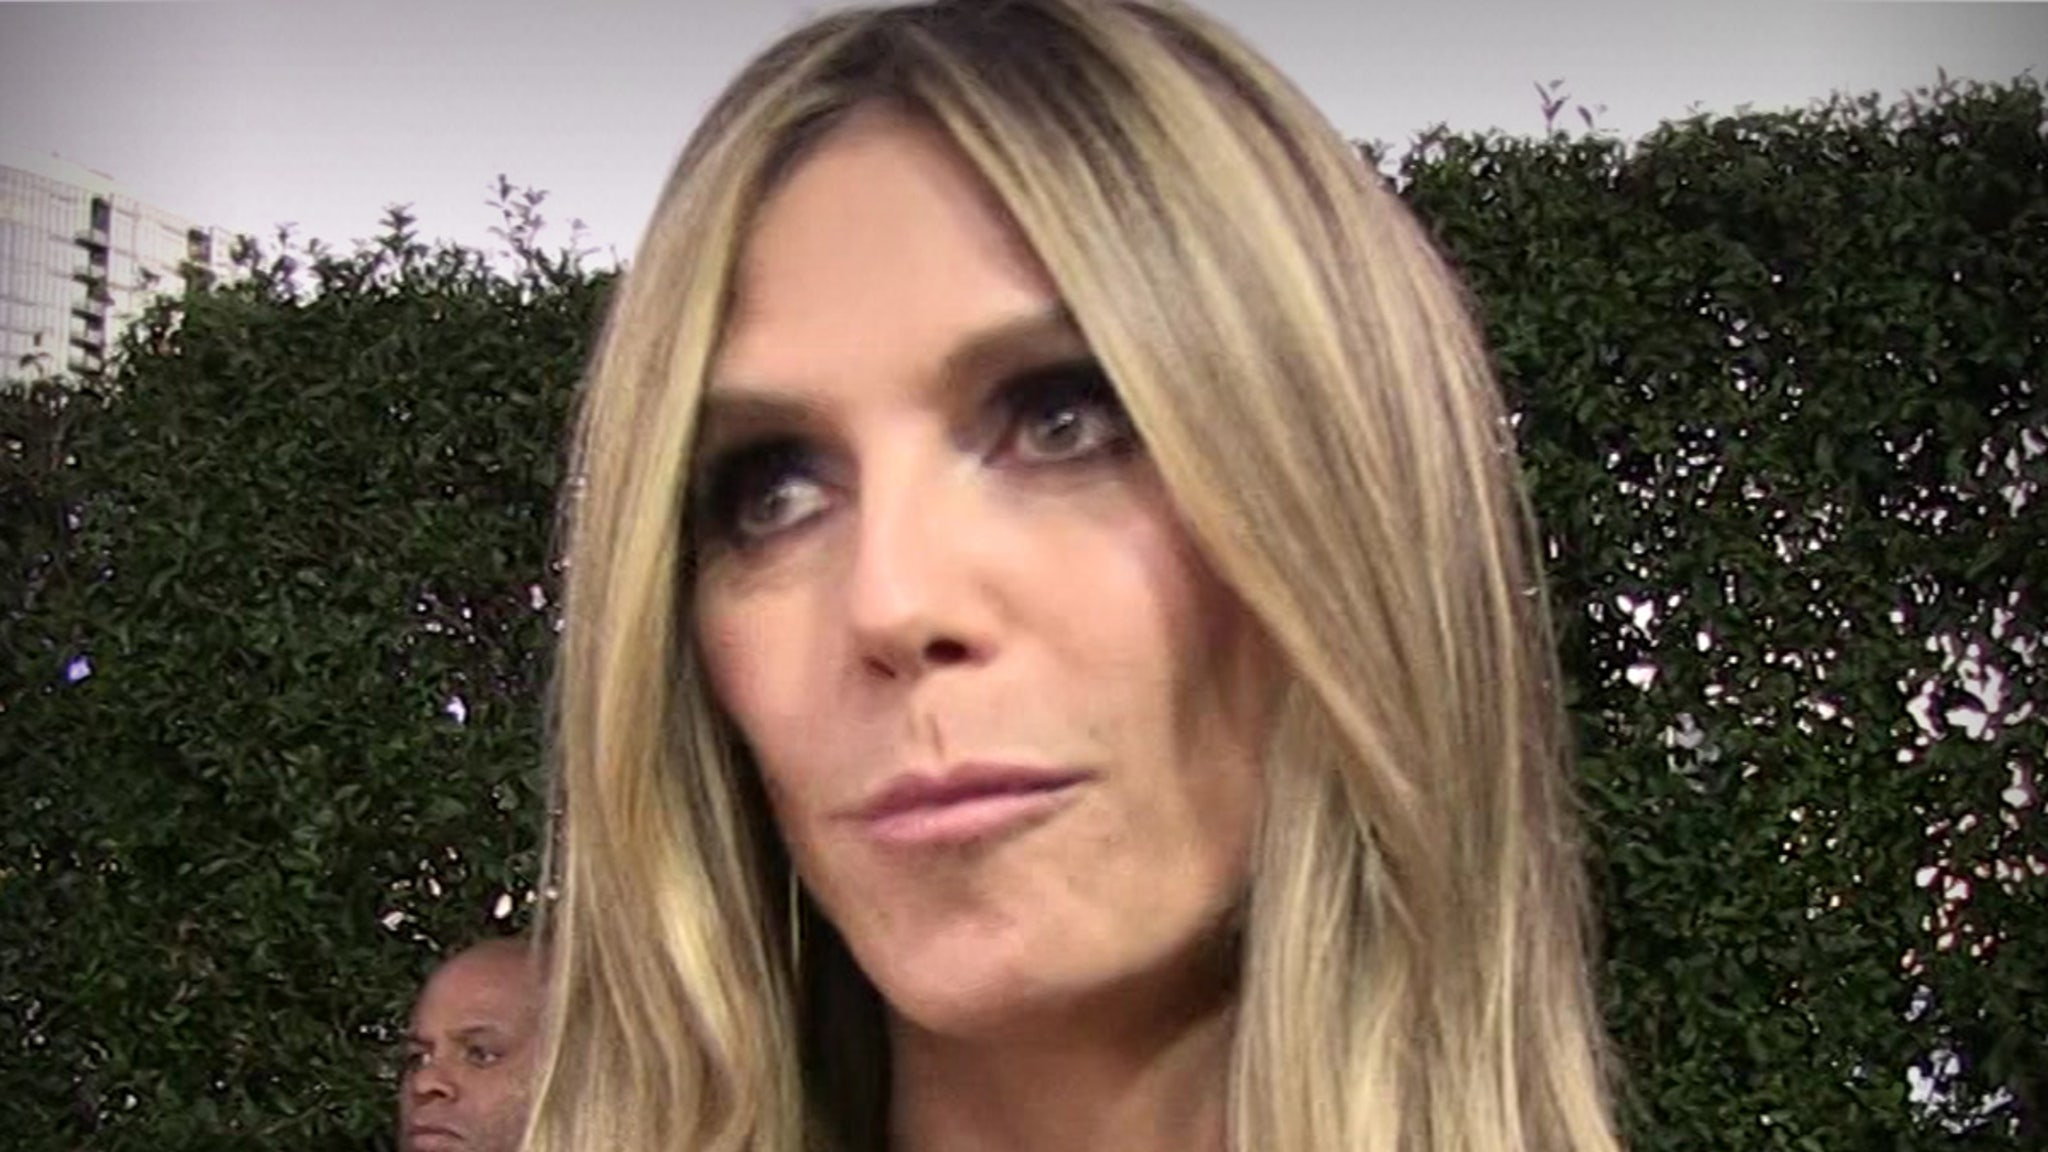 Heidi Klum Gets Scary Home Visit After Man Pounds on Her Door